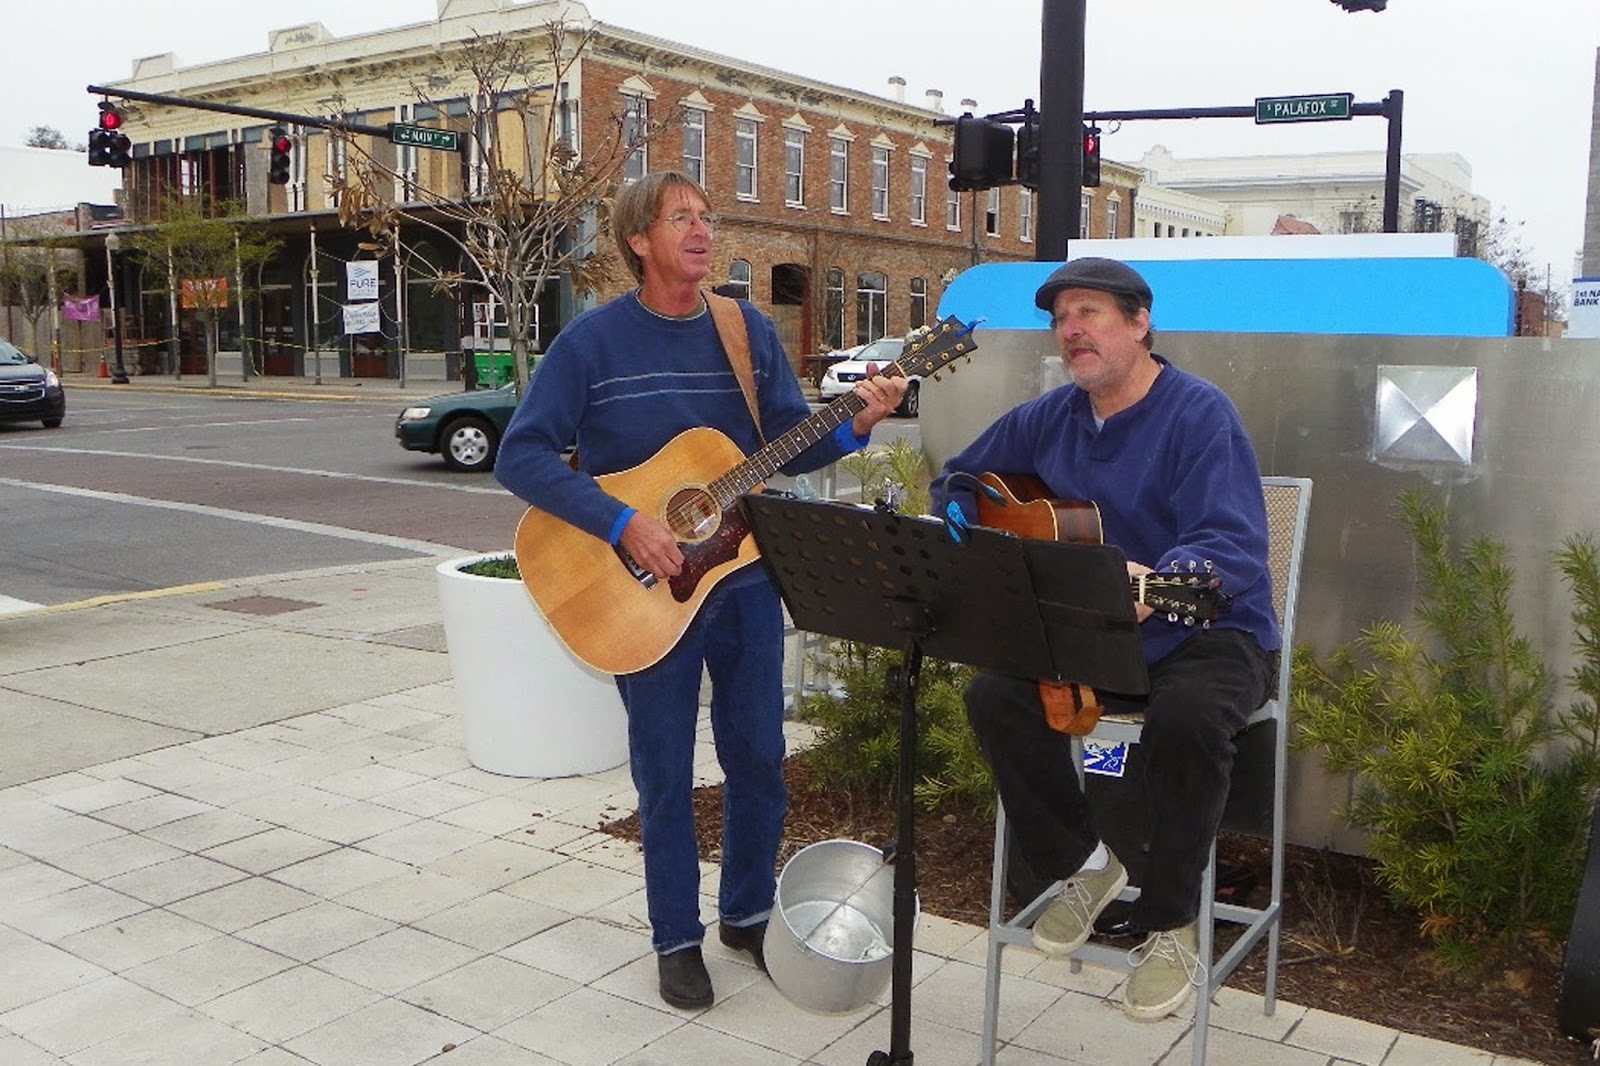 Live music at farmers market in Downtown Pensacola